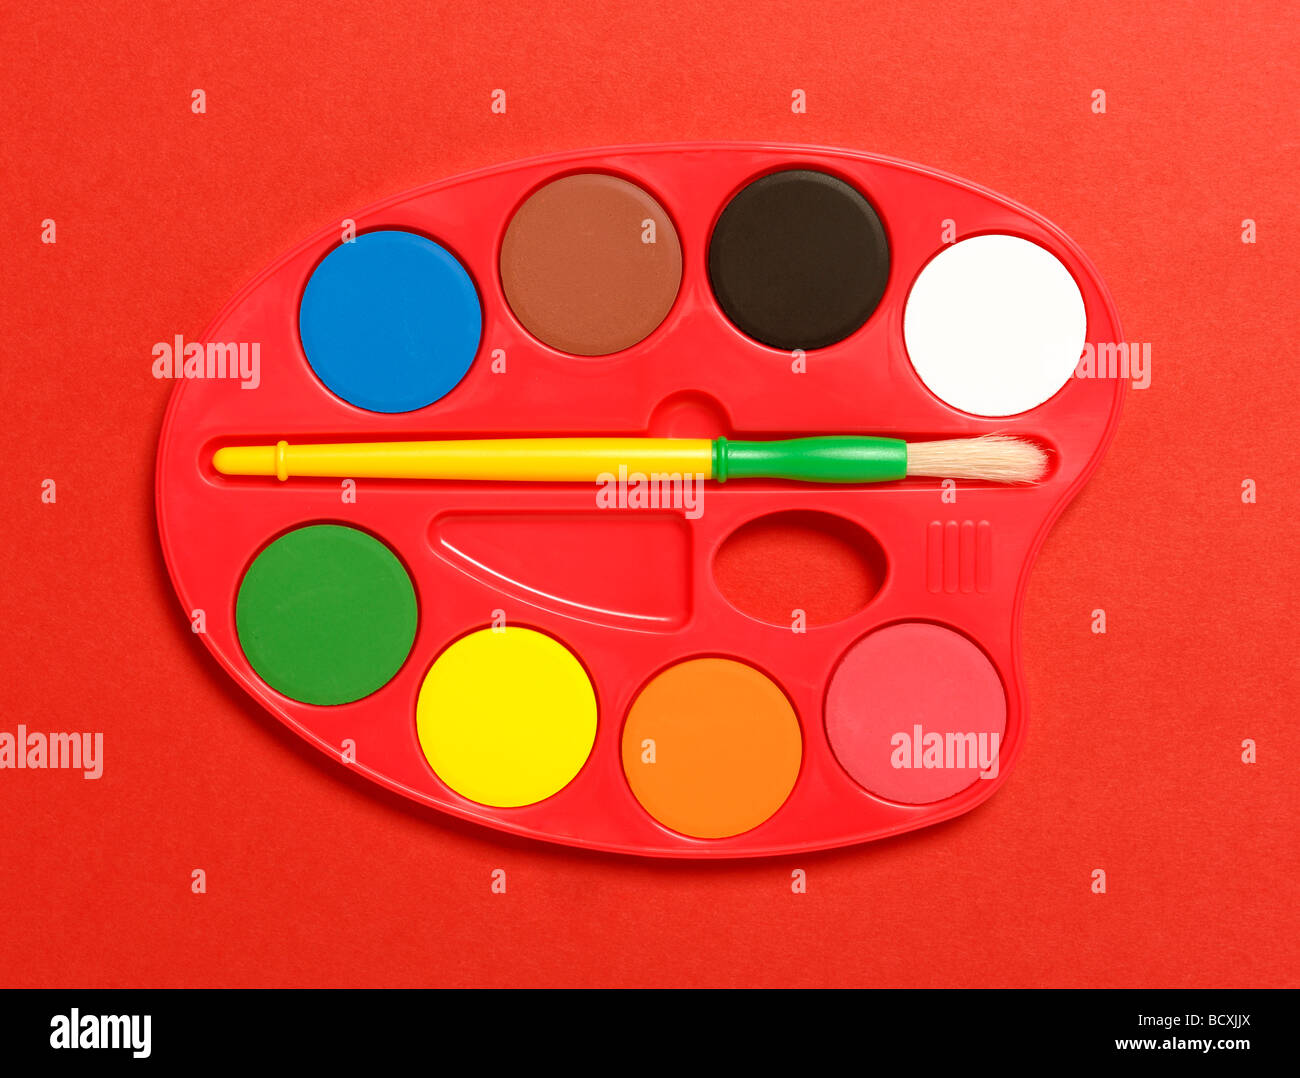 Paint palette - Stock Image